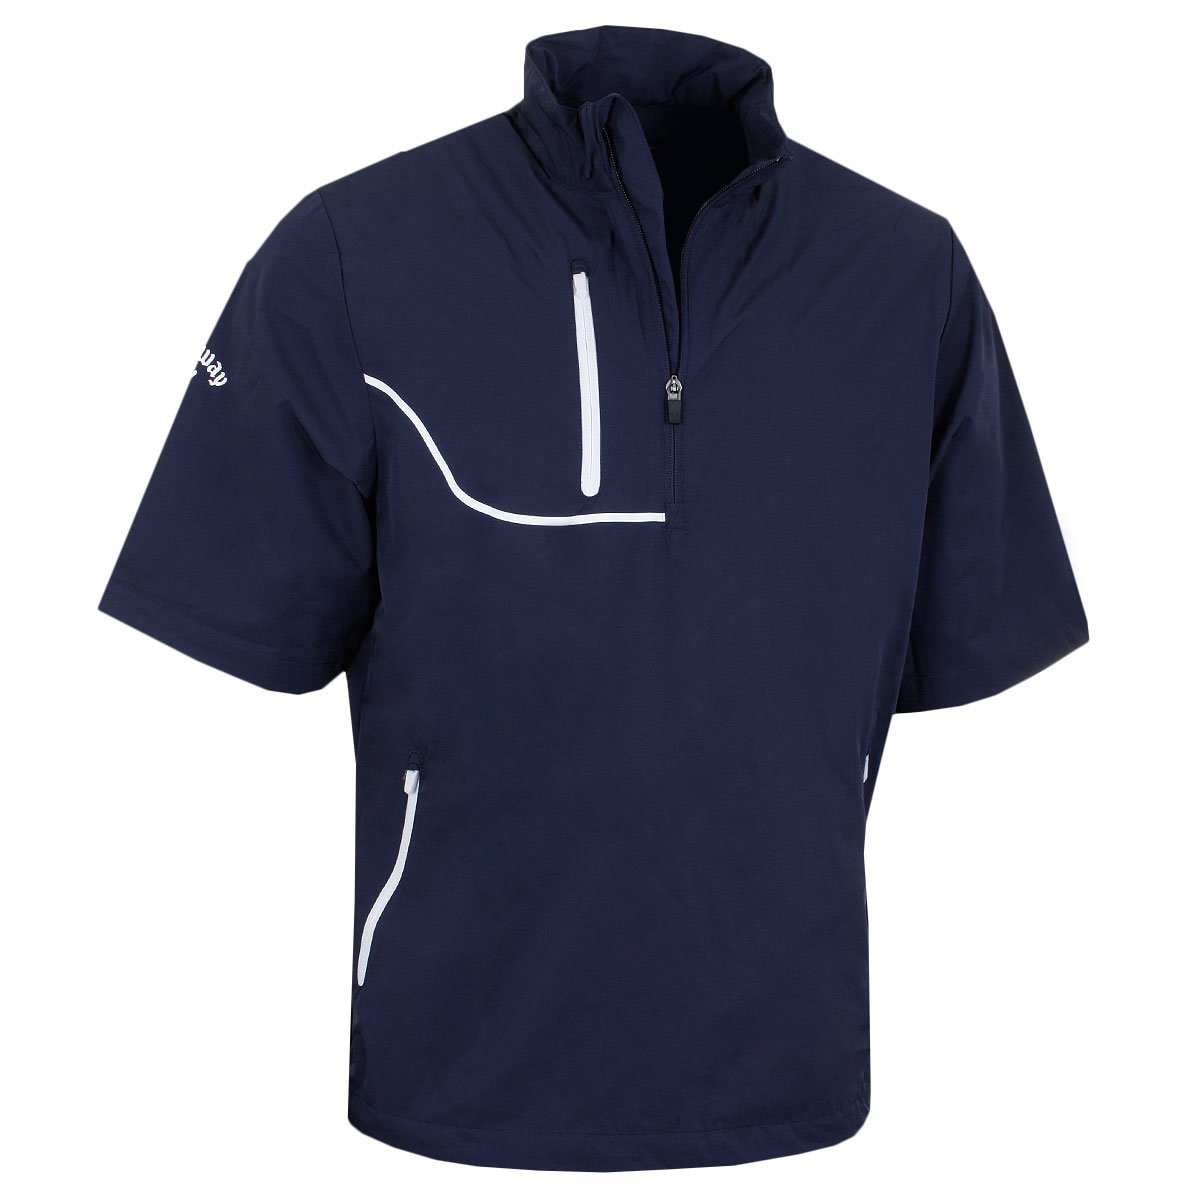 Callaway Golf Men's Gust 3 Short Sleeve Opti-Repel Windjacket - US M - Peacoat by Callaway